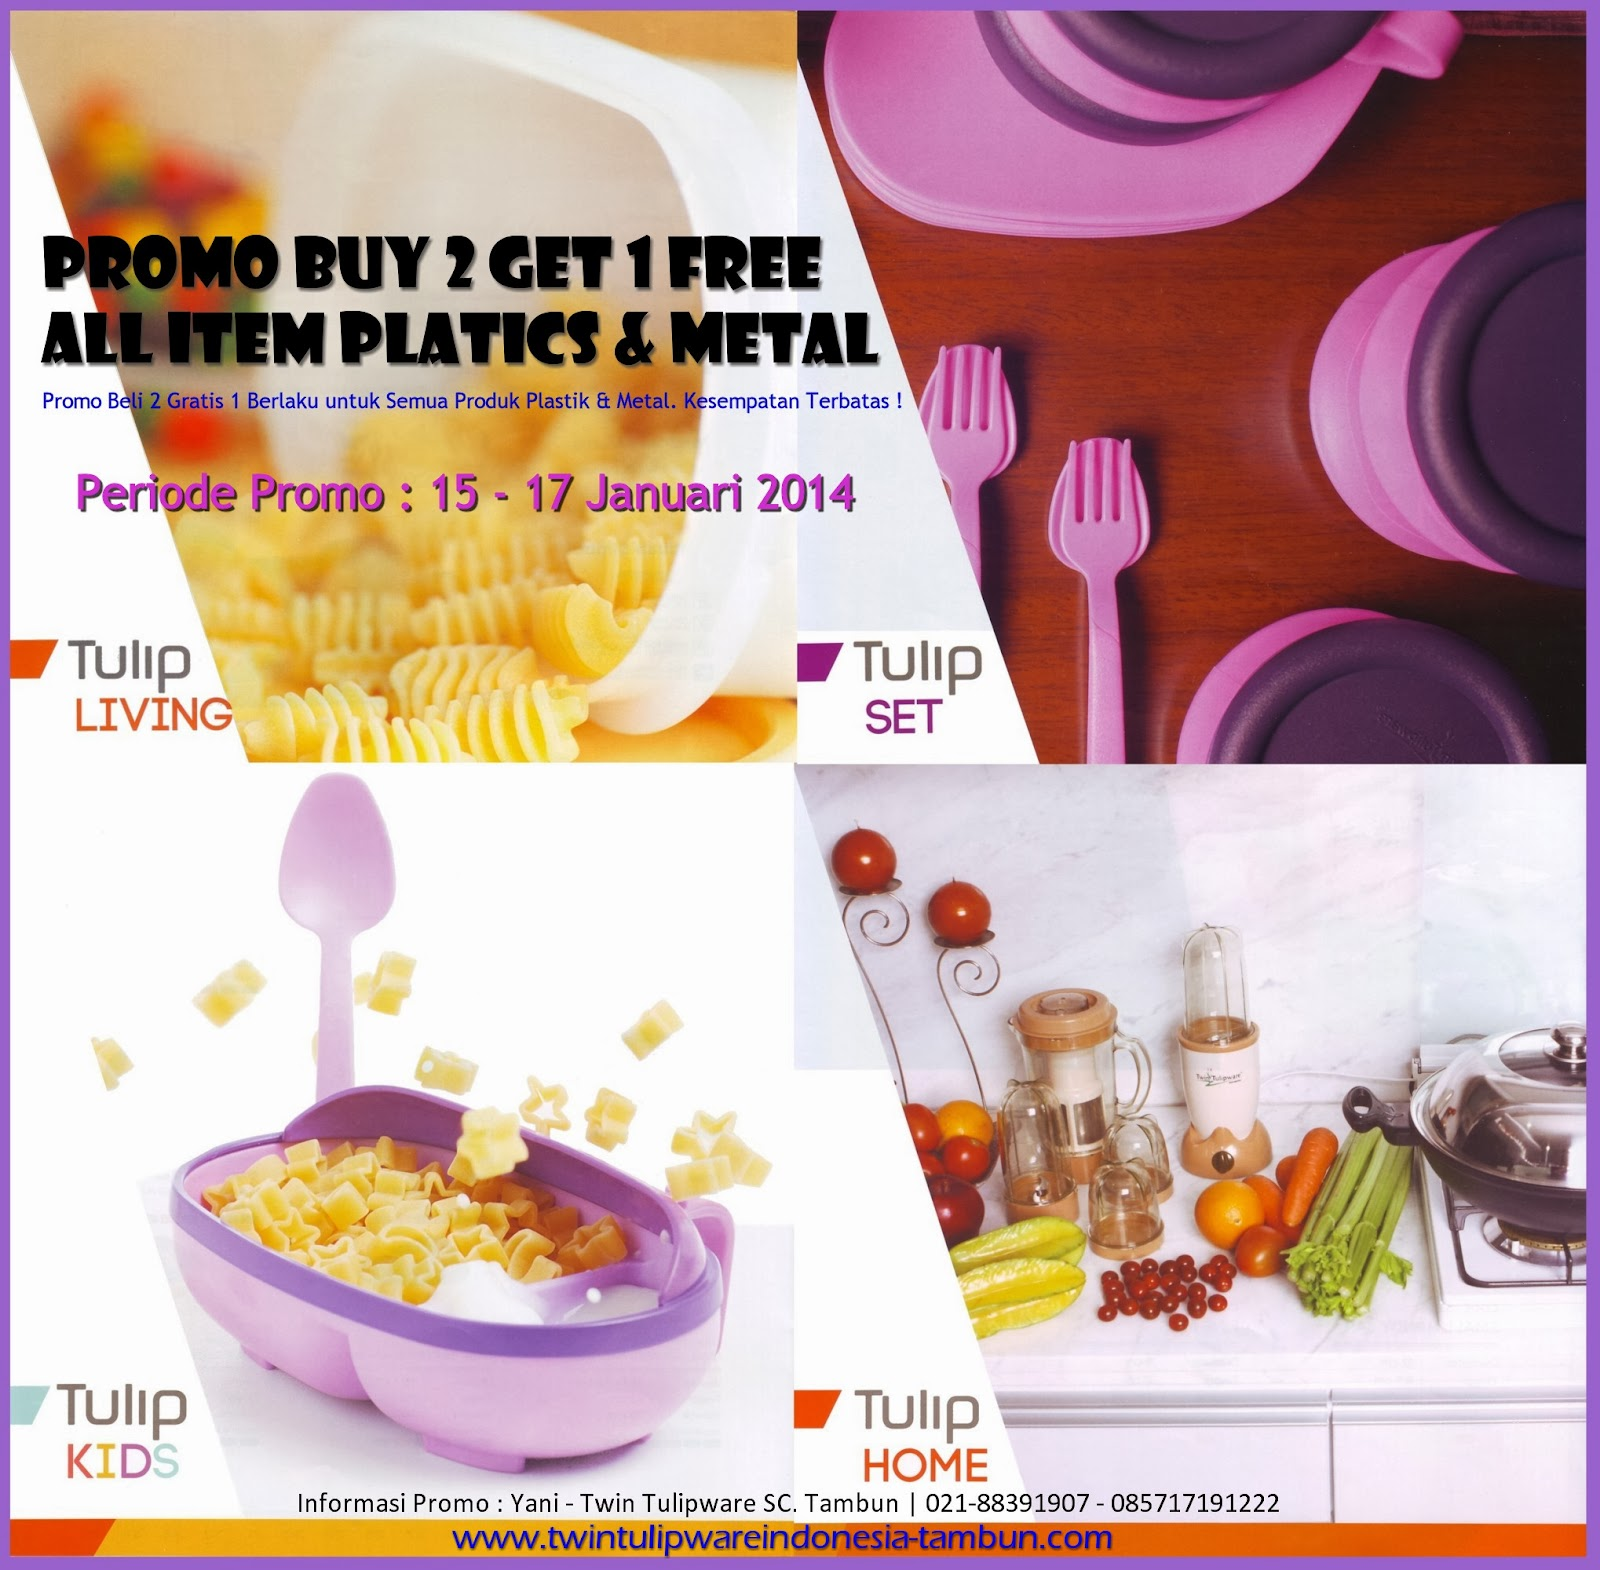 Promo 2 Free 1 All Item Plastics & Metal 2014